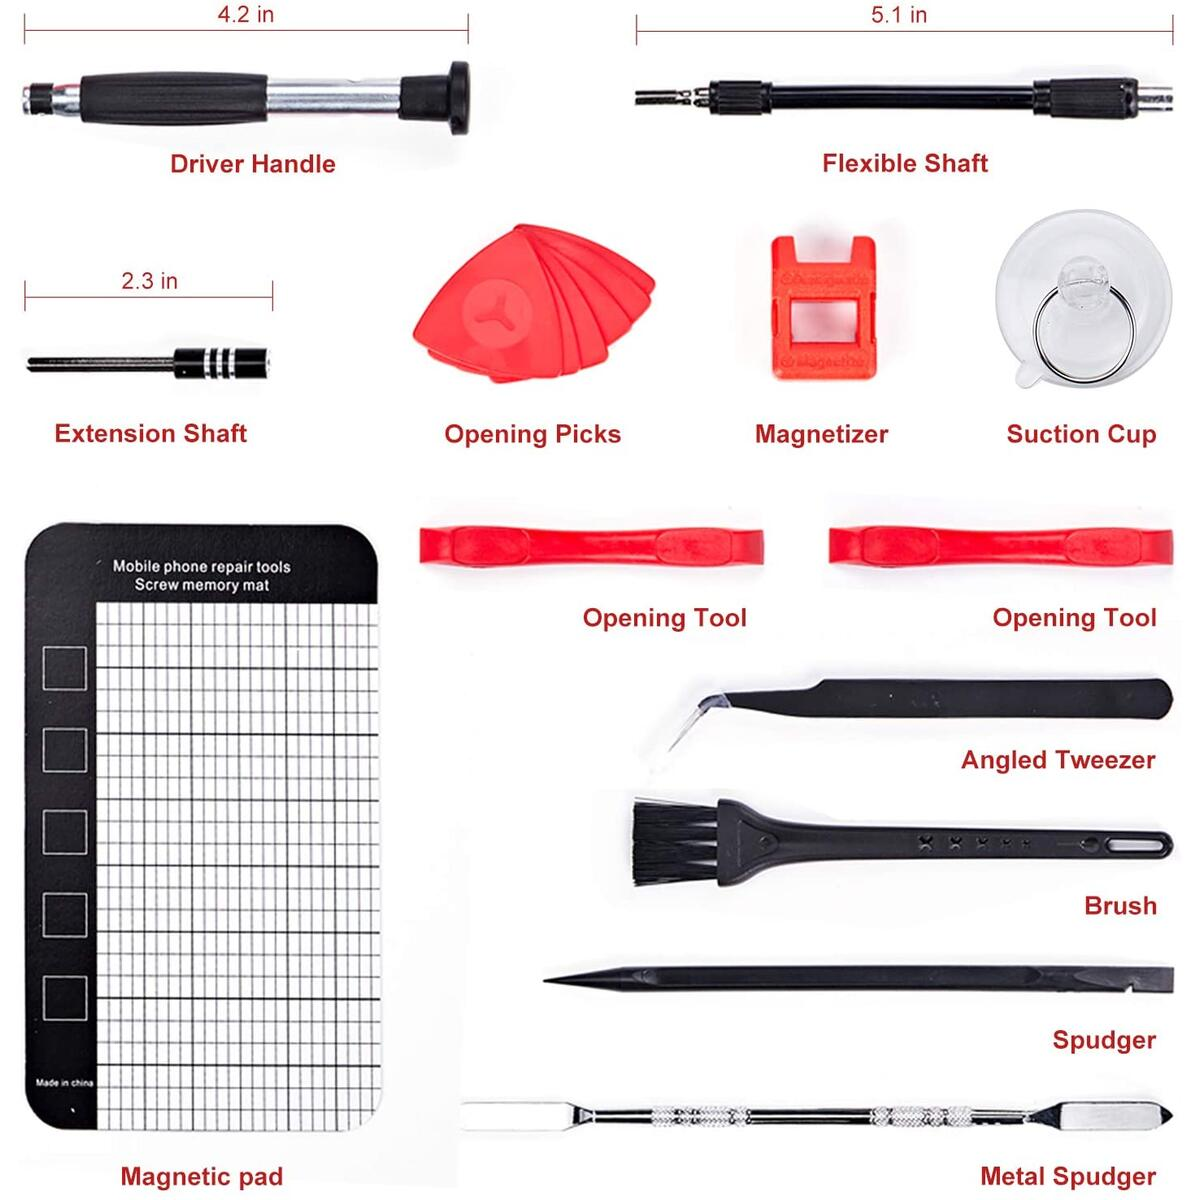 SHARDEN Precision Screwdriver Set 140 in 1 Magnetic Driver Kit Professional Repair Tool Kit with Portable Bag for iPhone, iPad, PC, Computer, Laptop, MacBook, Tablet, Xbox, Game Console, Watch (Red)